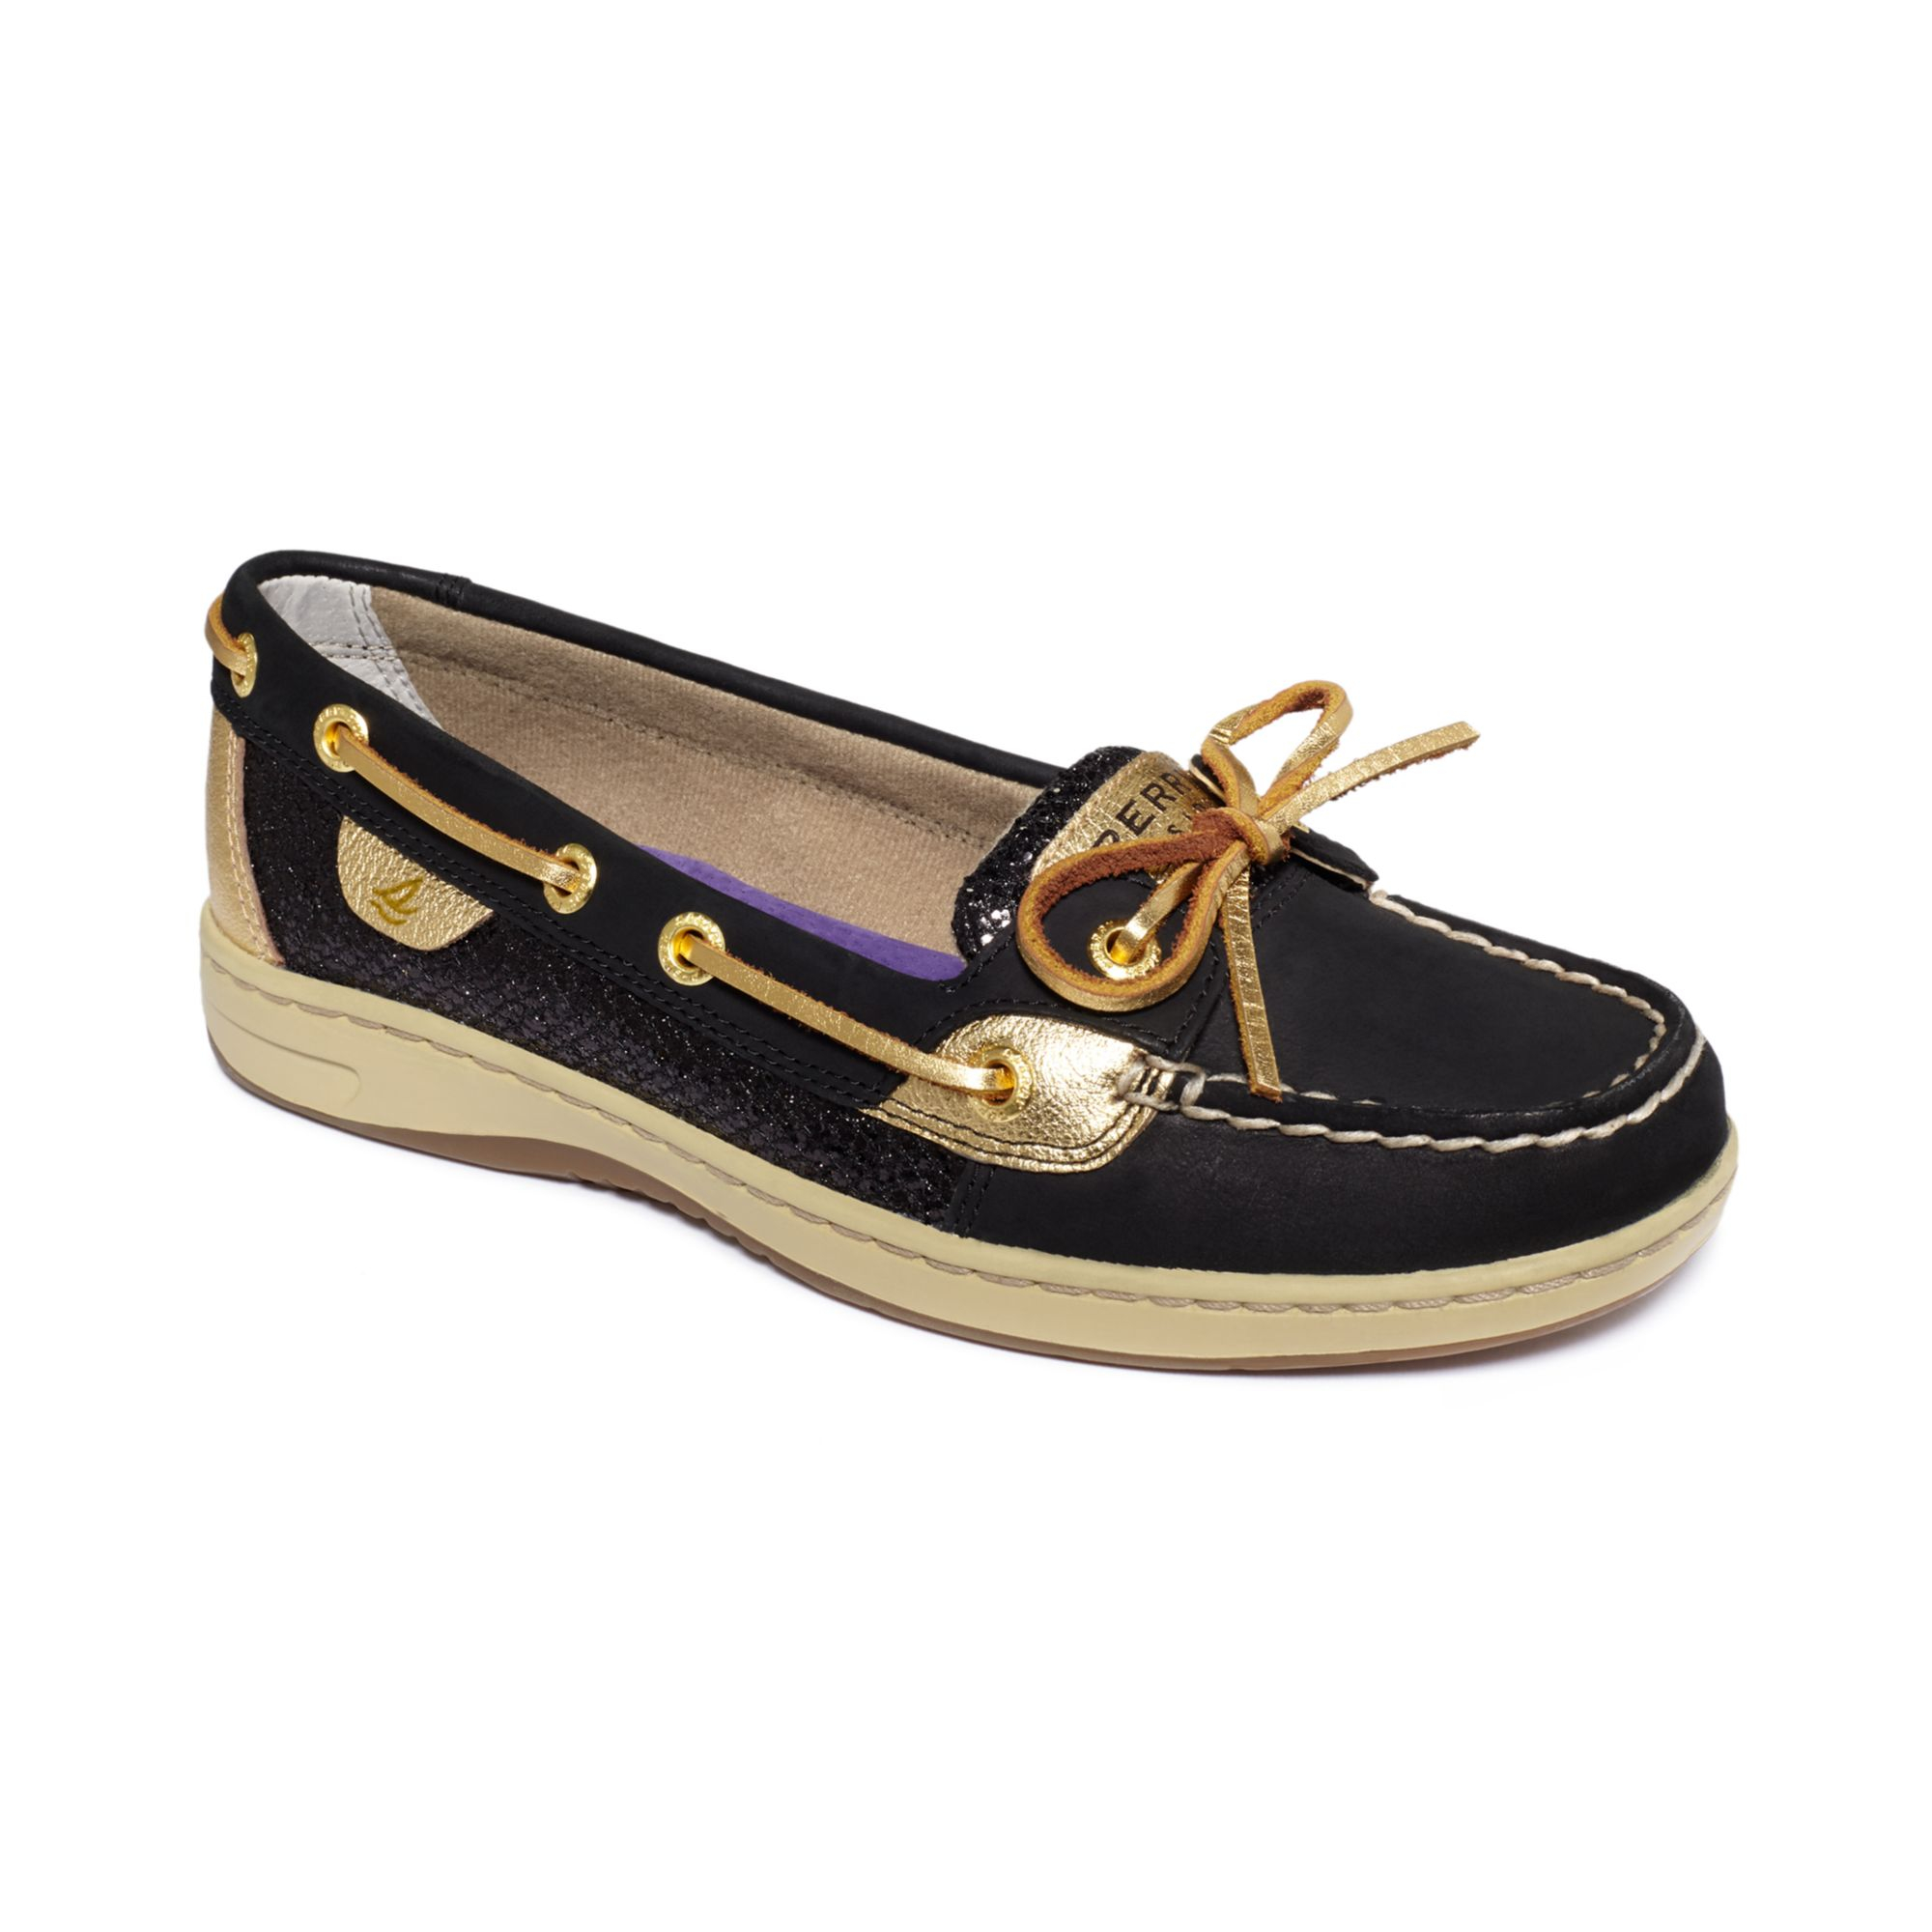 Black Glitter Sperry Boat Shoes